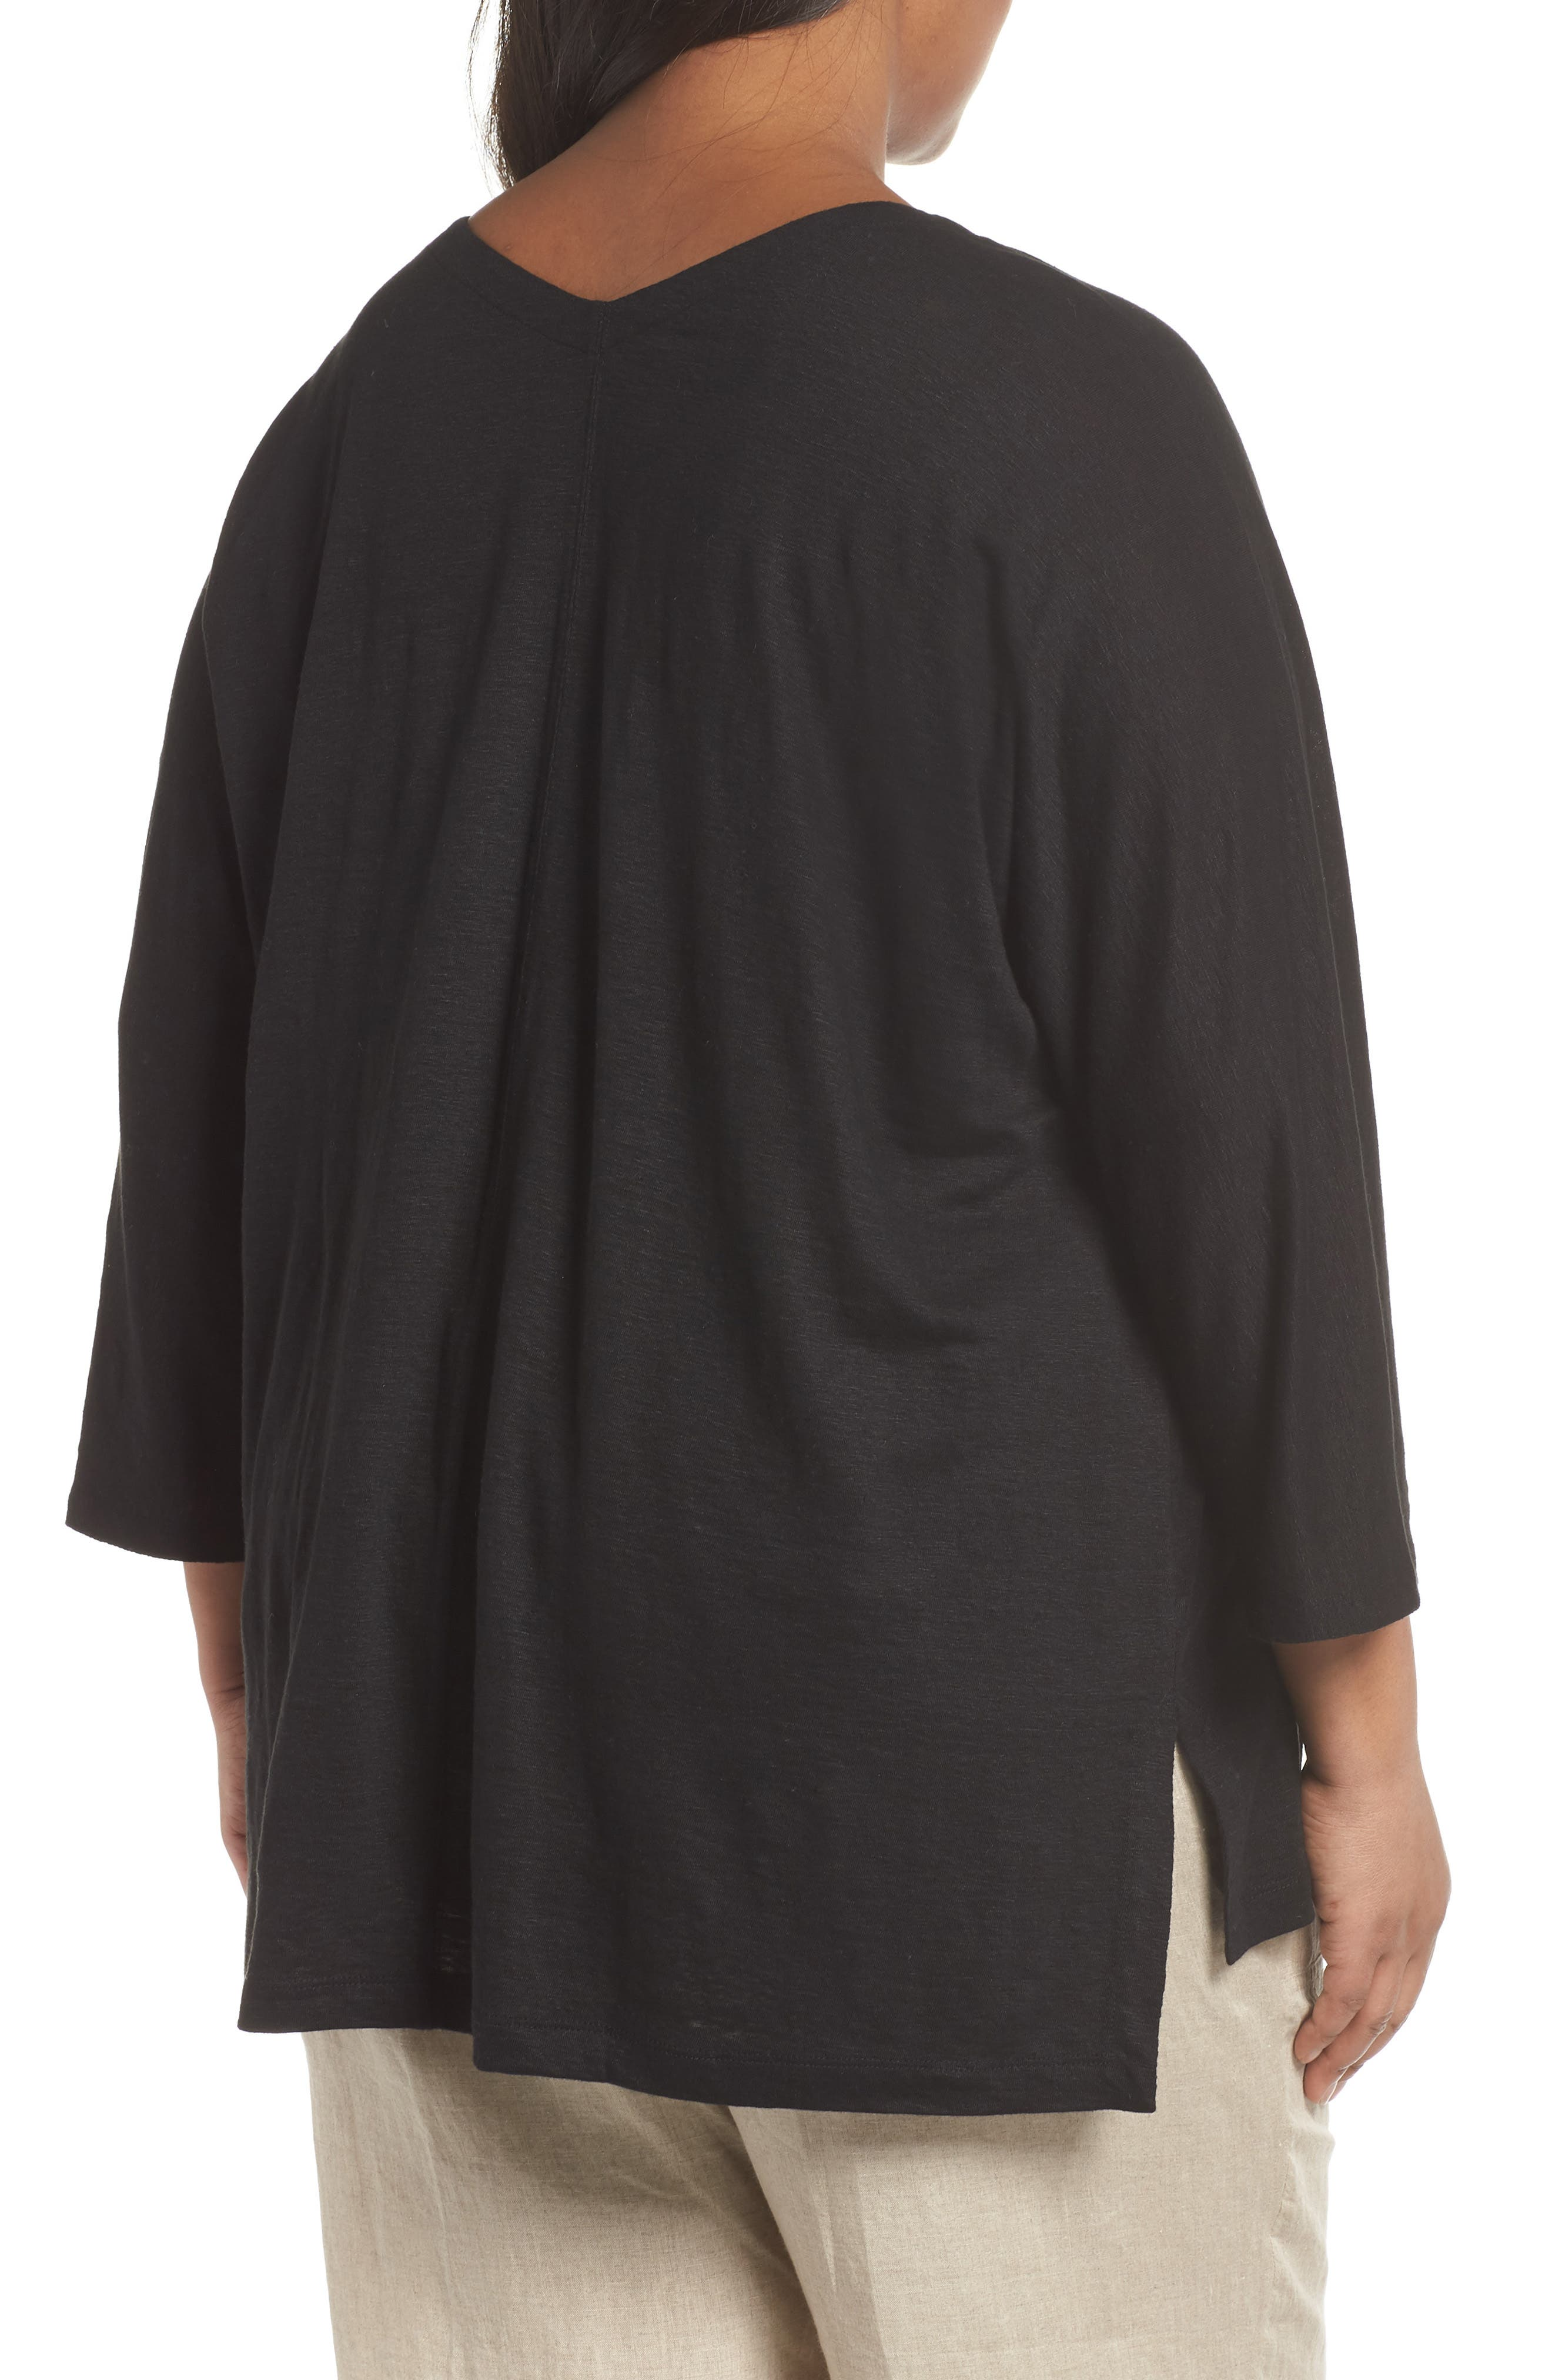 EILEEN FISHER,                             Organic Linen Top,                             Alternate thumbnail 2, color,                             001